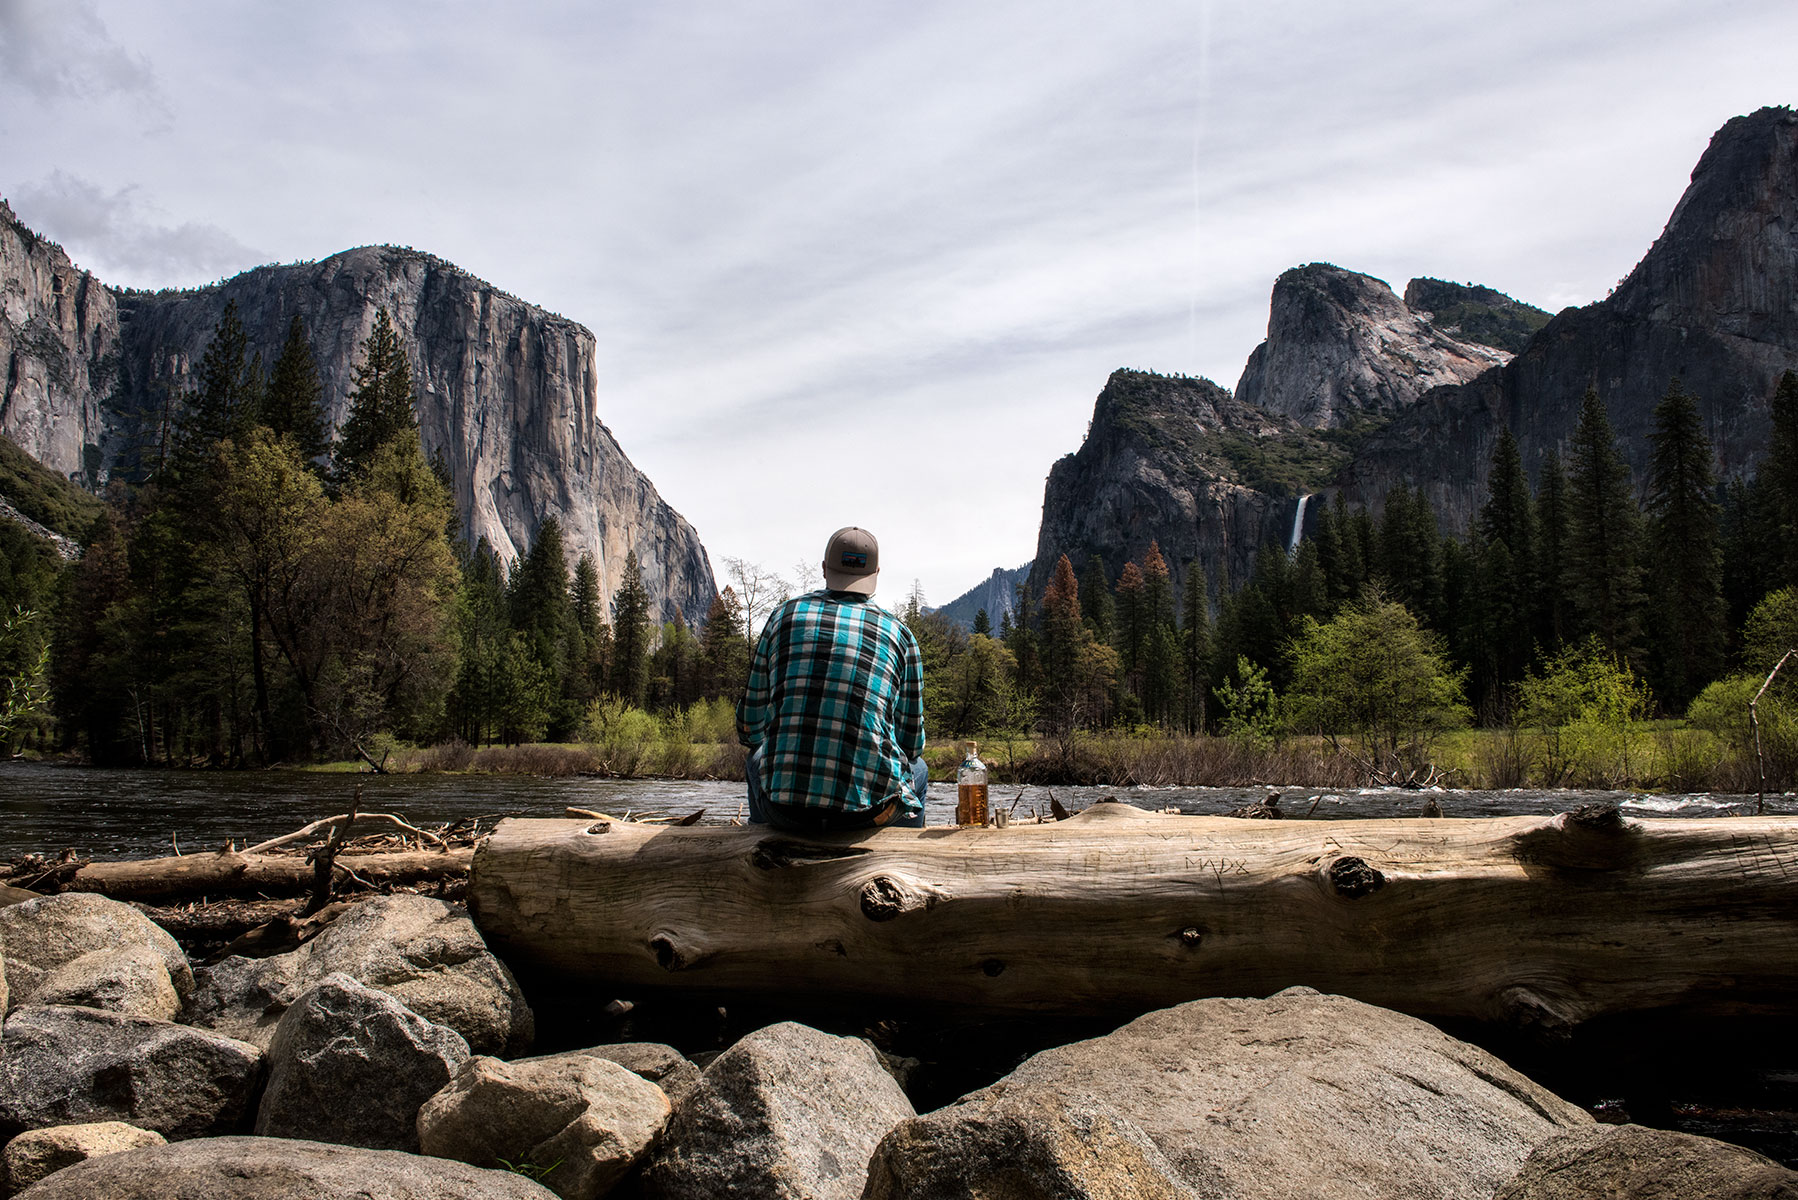 austin-trigg-whiskey-yosemite-product-TINCUP-Valley-View-Daytime-merced-river-product-bottle.jpg